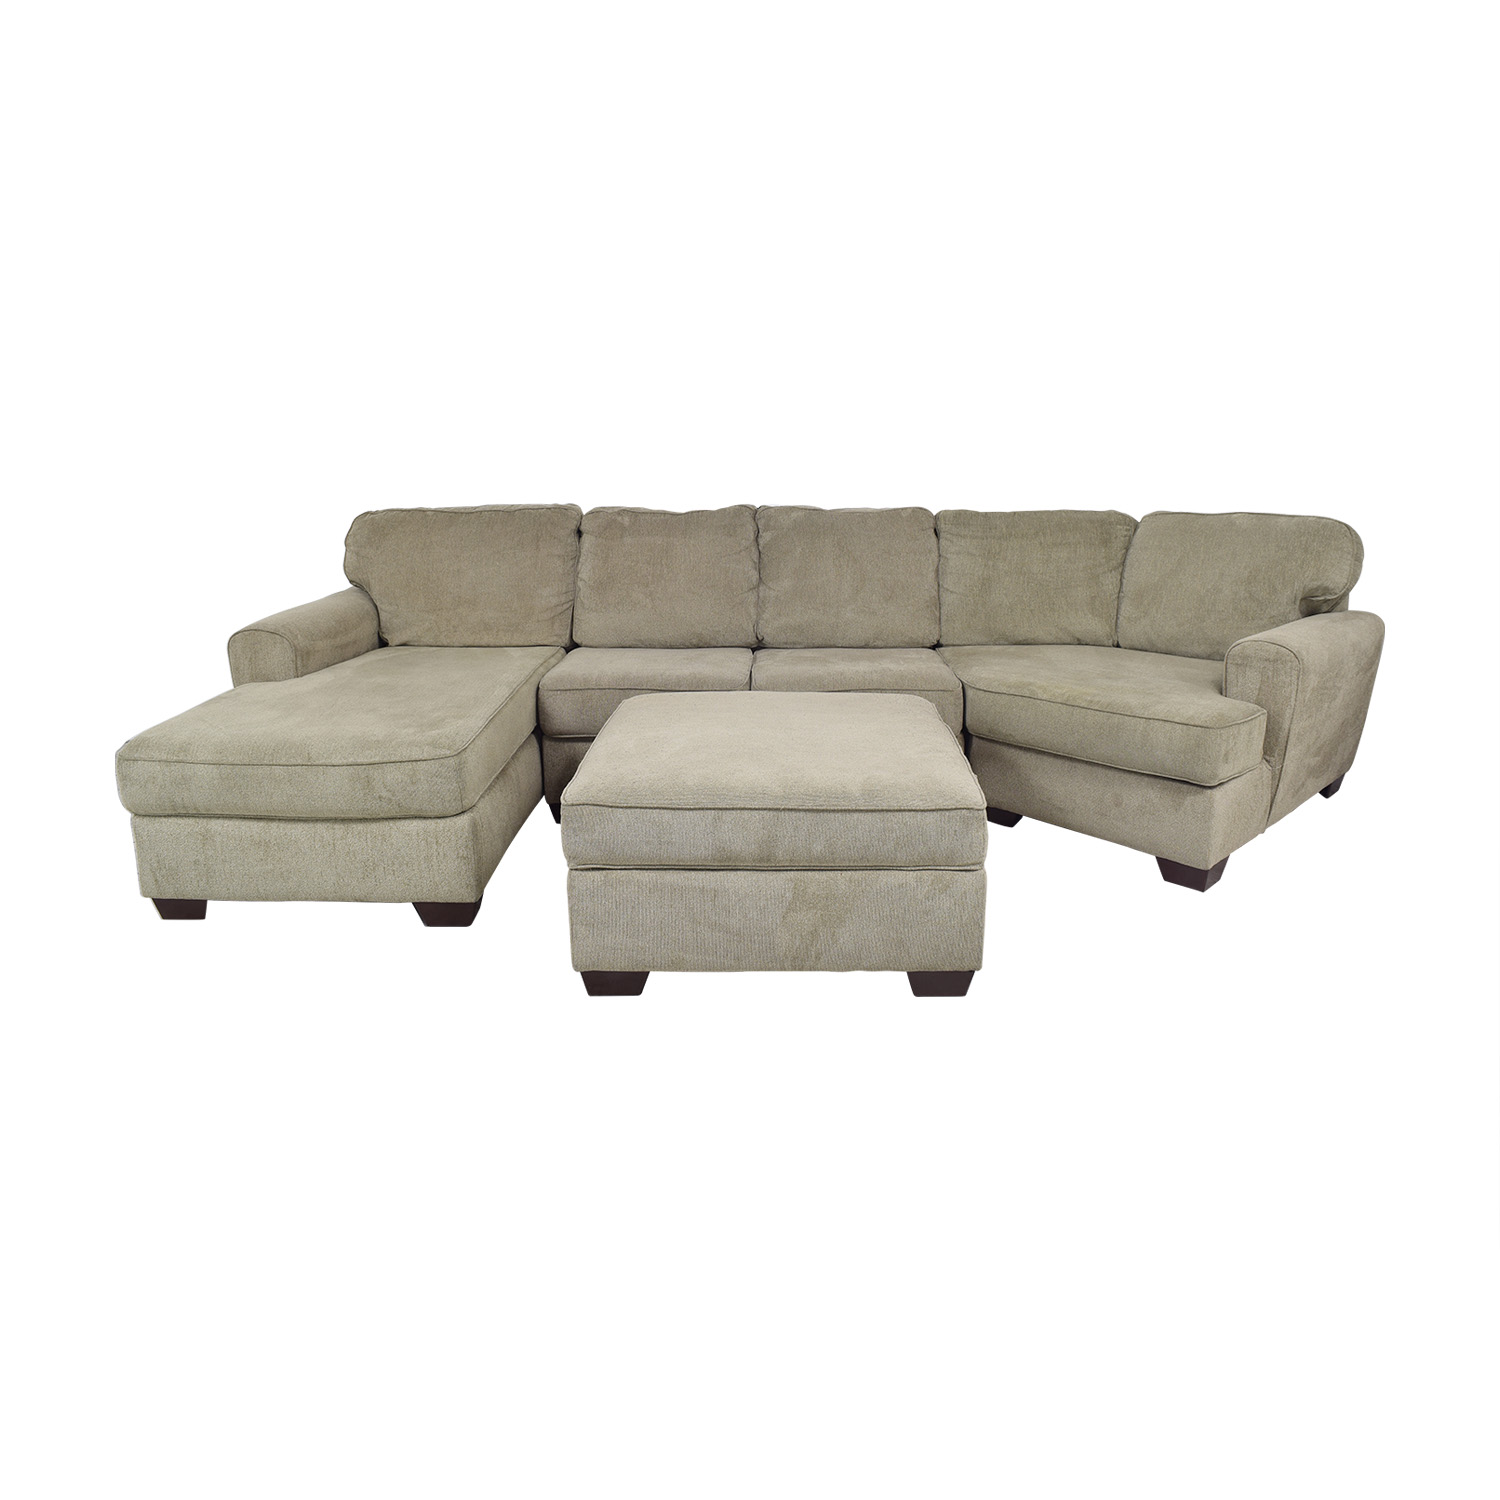 68 off ashley furniture ashley furniture patola park sectional with chaise and cuddler sofas